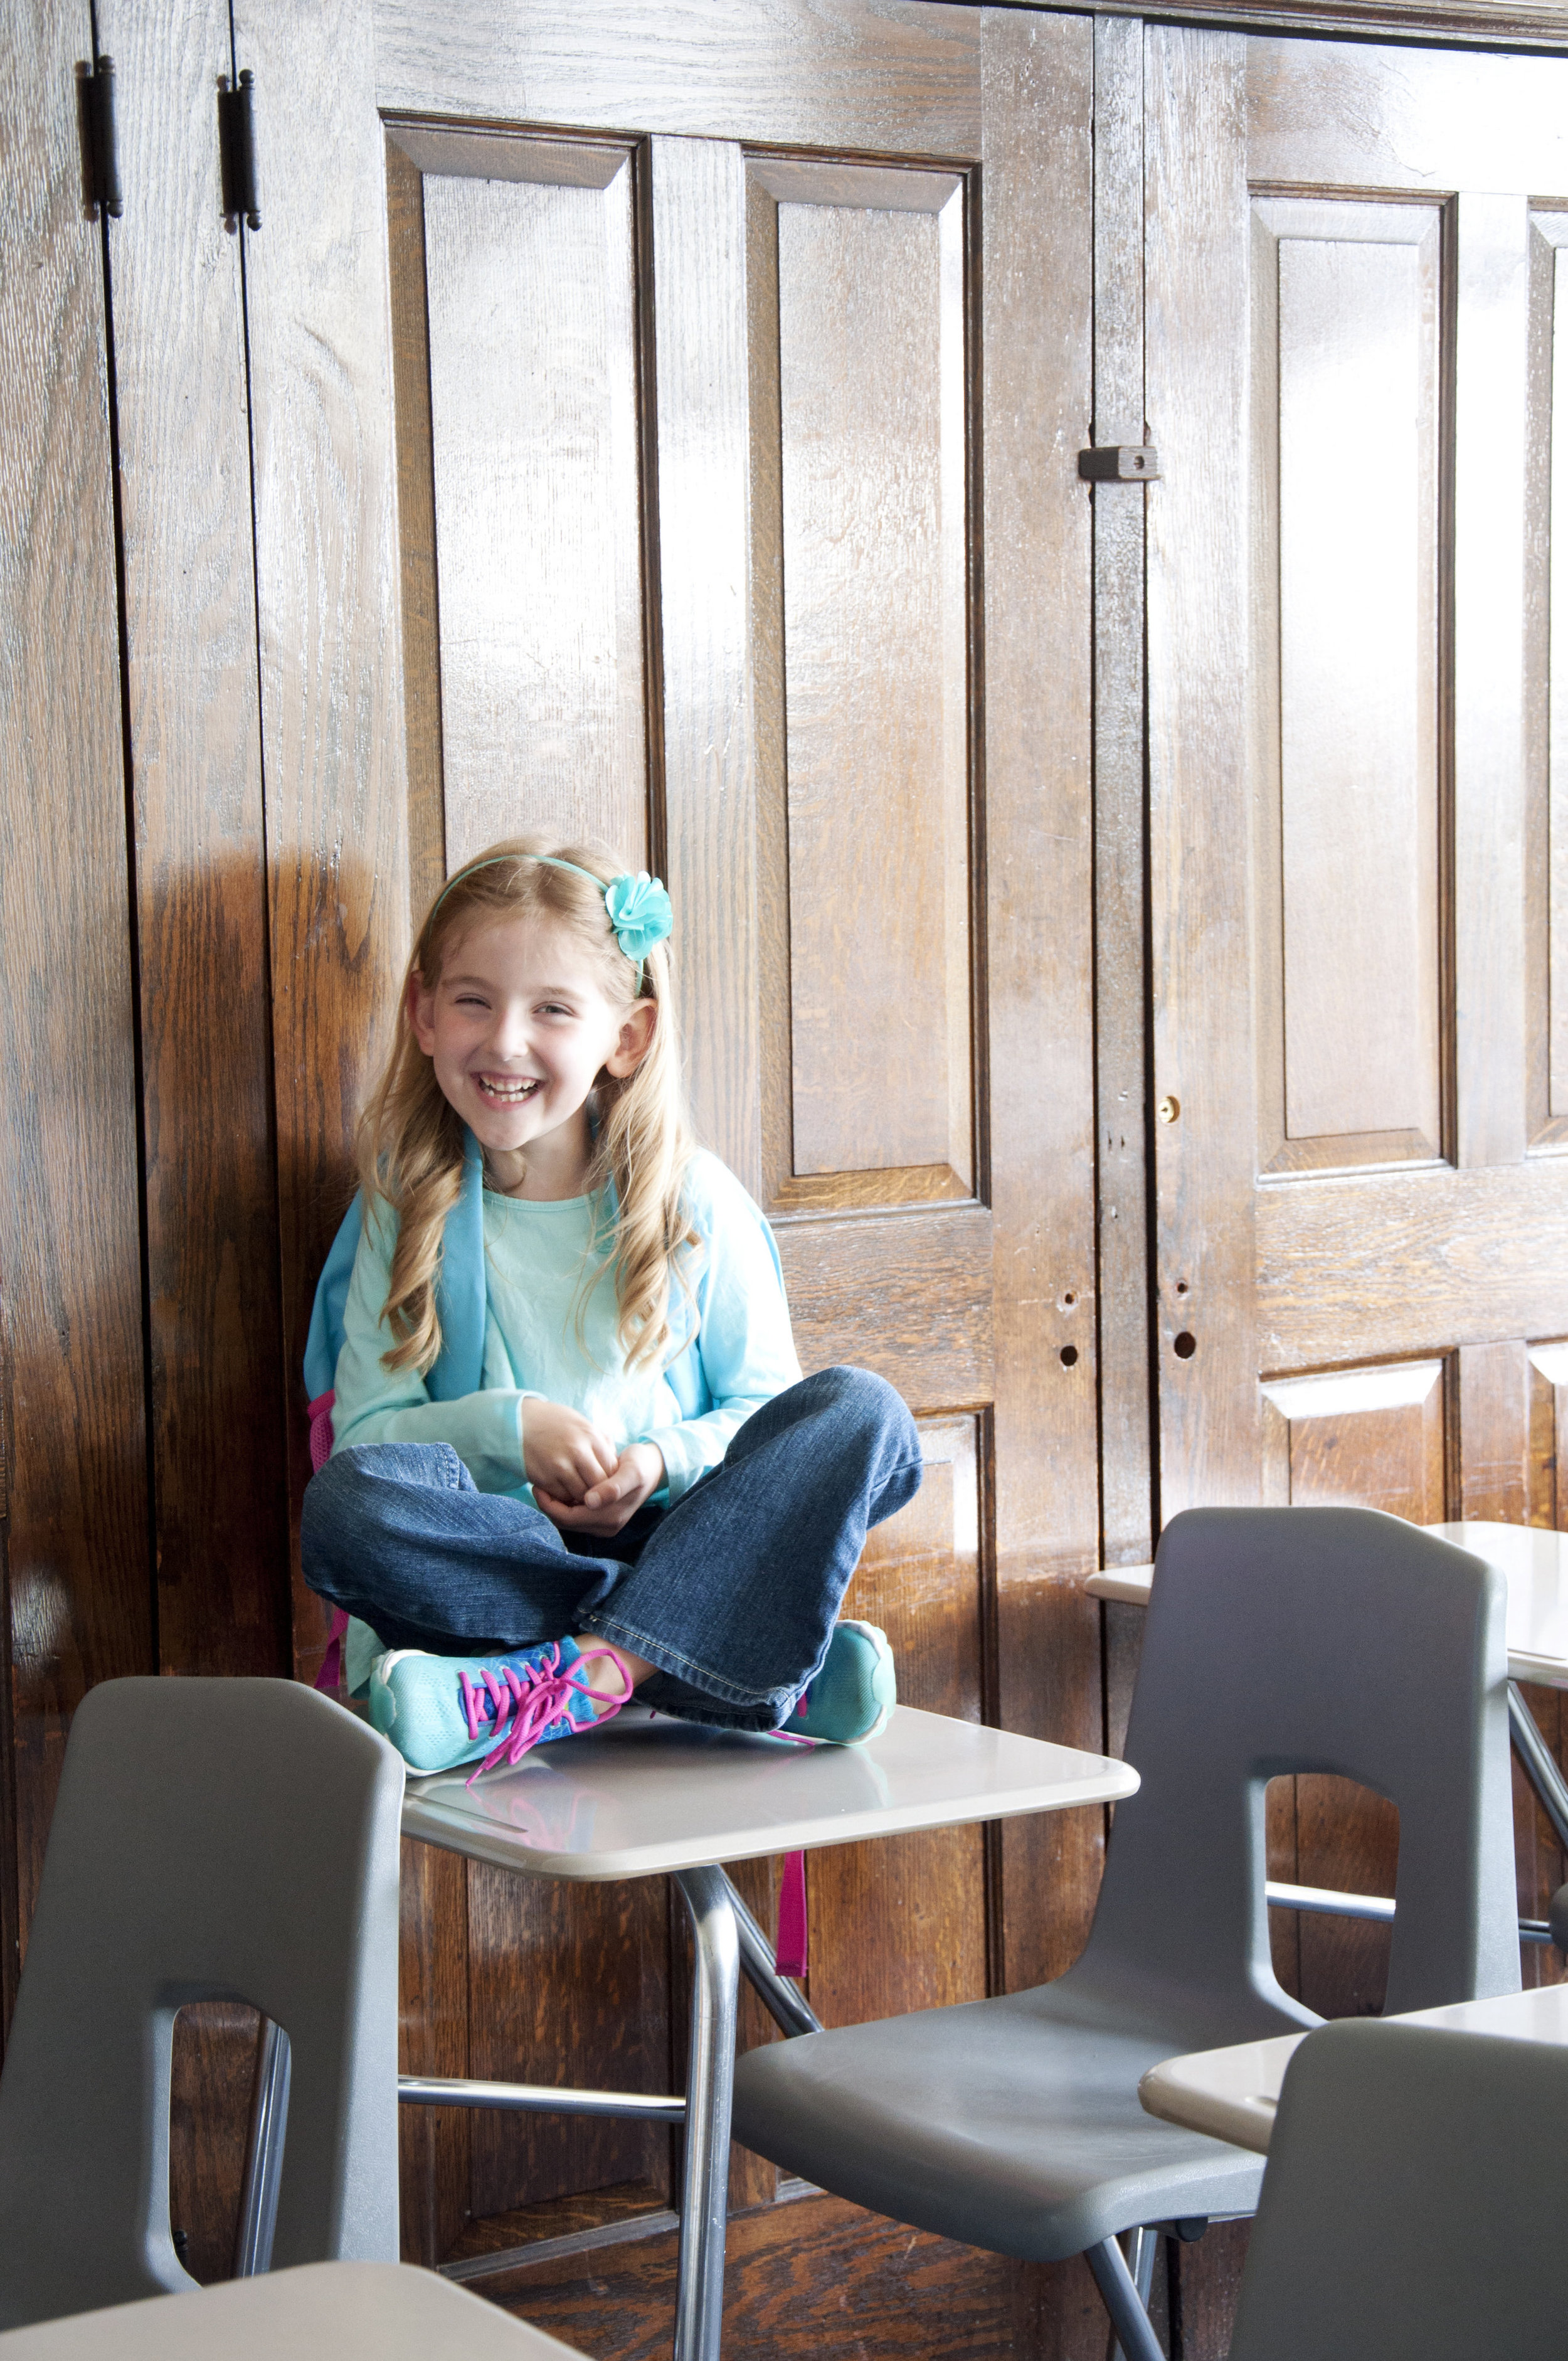 hooray! you booked a back to school mini session! - I just received your session appointment in my inbox and did a happy dance!You should expect an email from me to pay your deposit and view/sign your contract within the next few days!These sessions will be at fairmont state university. I will send detailed information about the building as well as parking details the week prior to your session. I can't wait to see you! Email me with any questions!Meredithmeredith@meredithbrookephotography.com